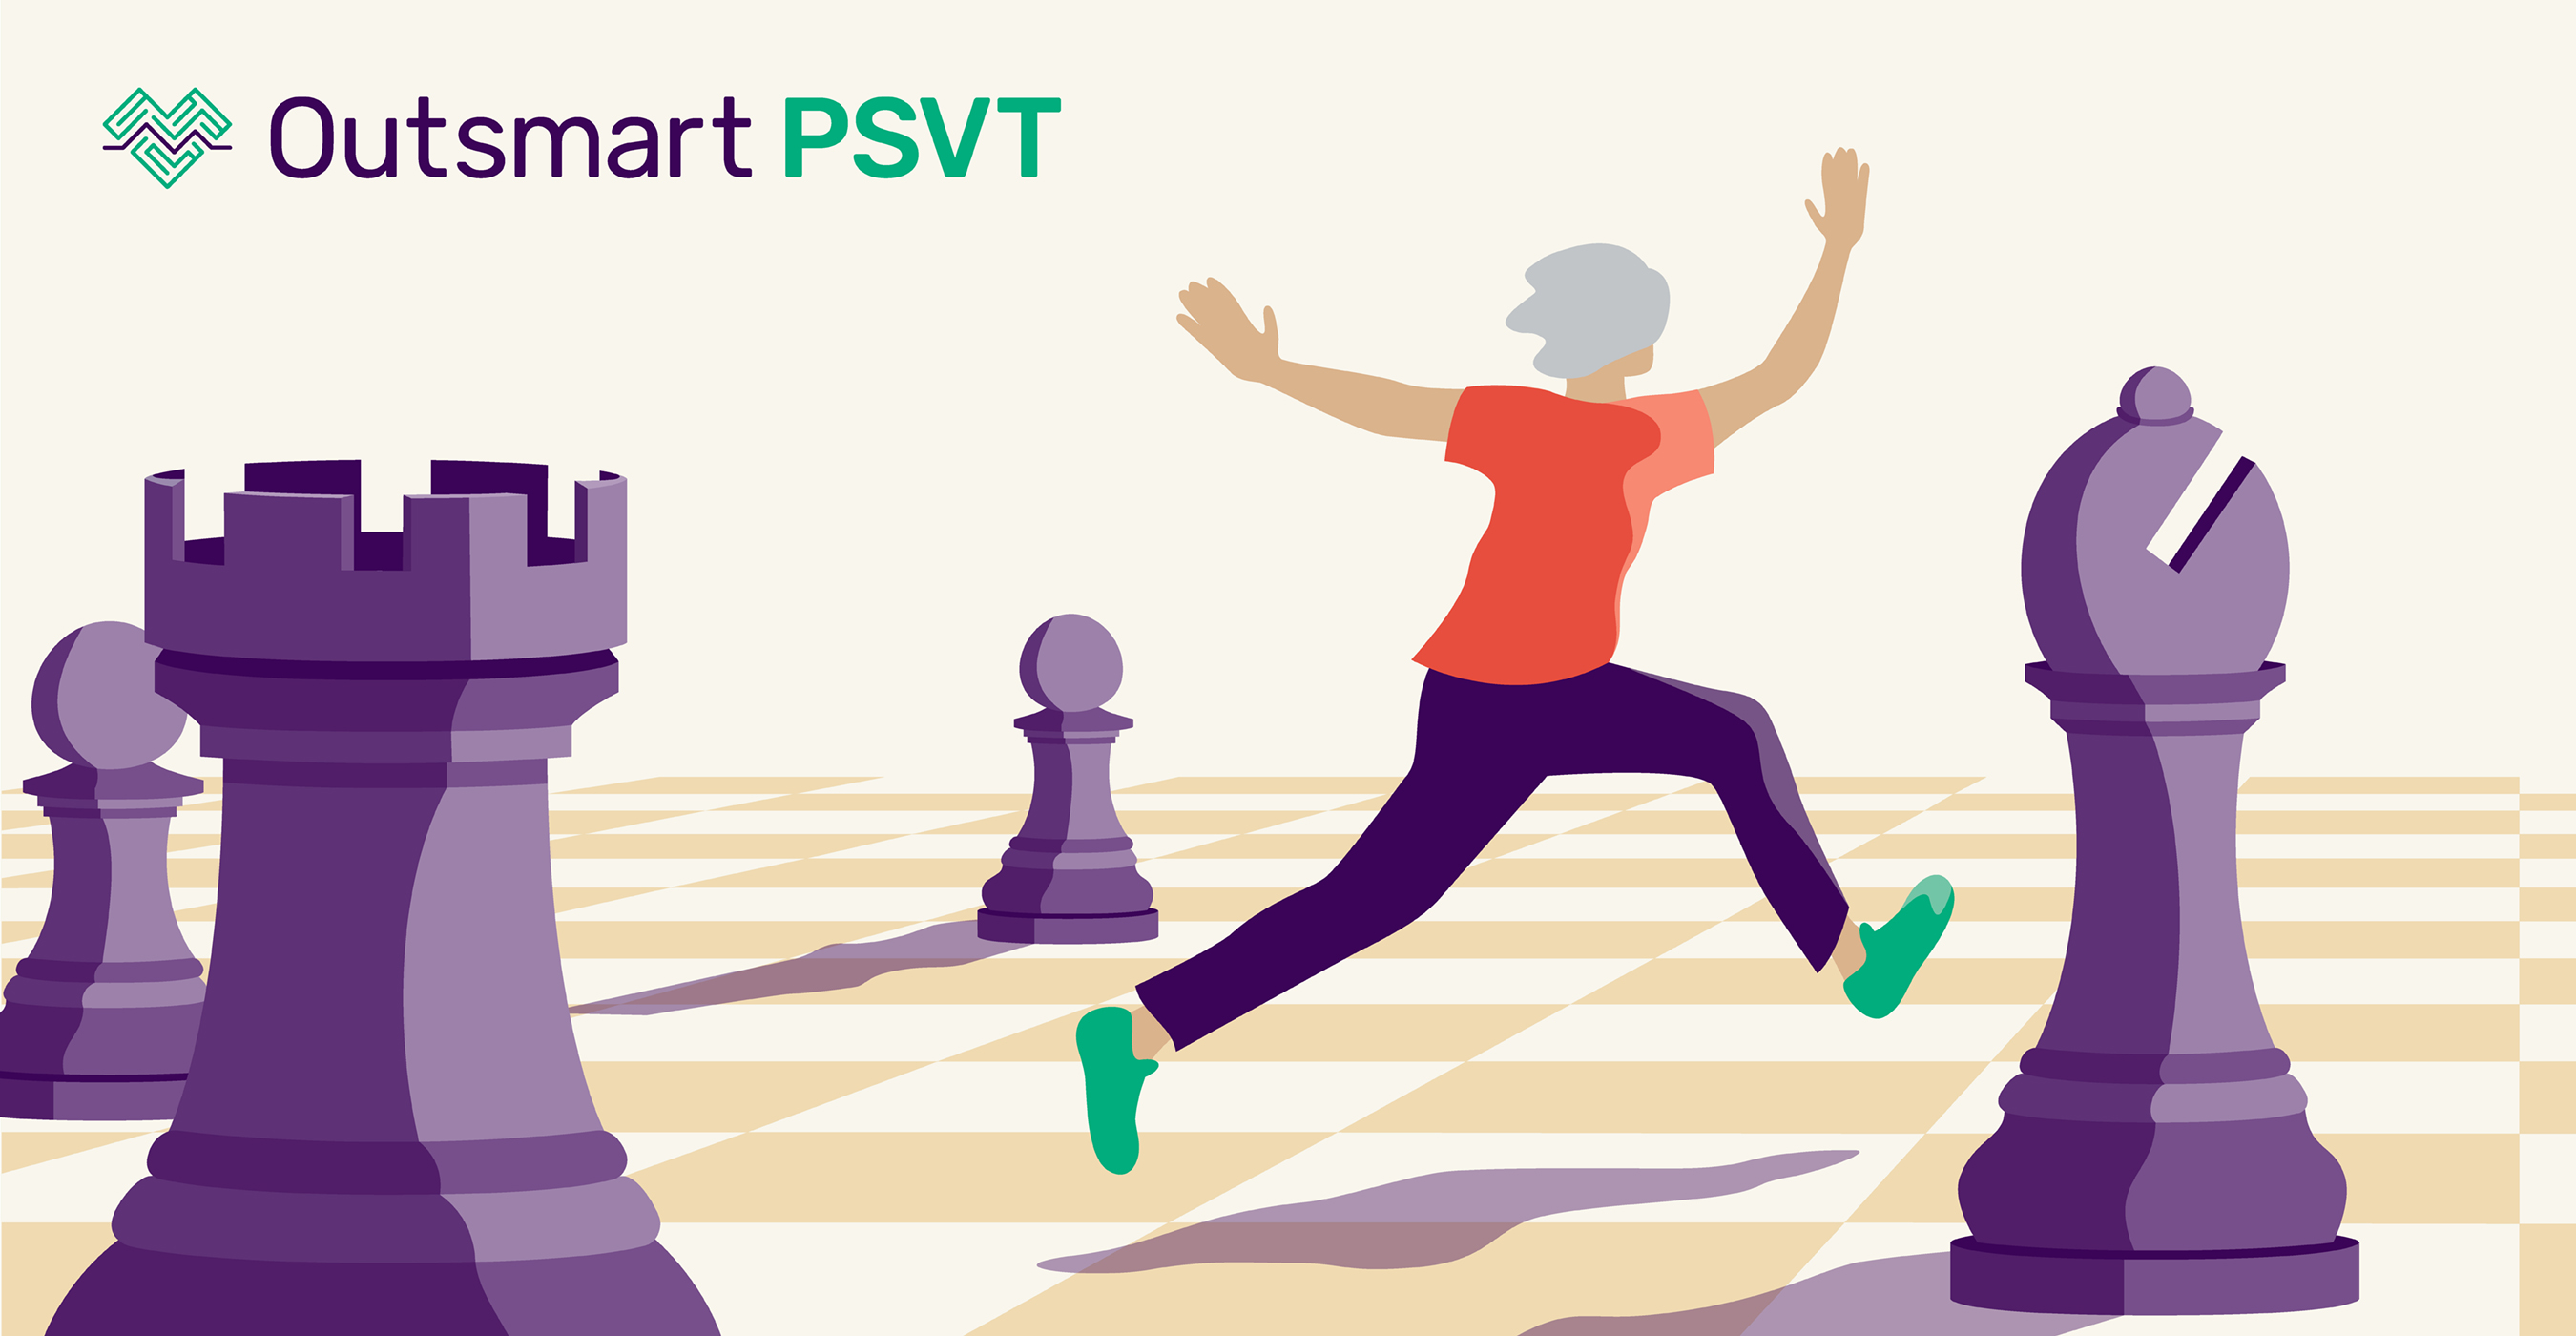 OutsmartPSVT.com is your go-to resource to learn how to actively manage the #HeartCondition #PSVT before, during and after a diagnosis. Share with those who may find it helpful. #OutsmartPSVT